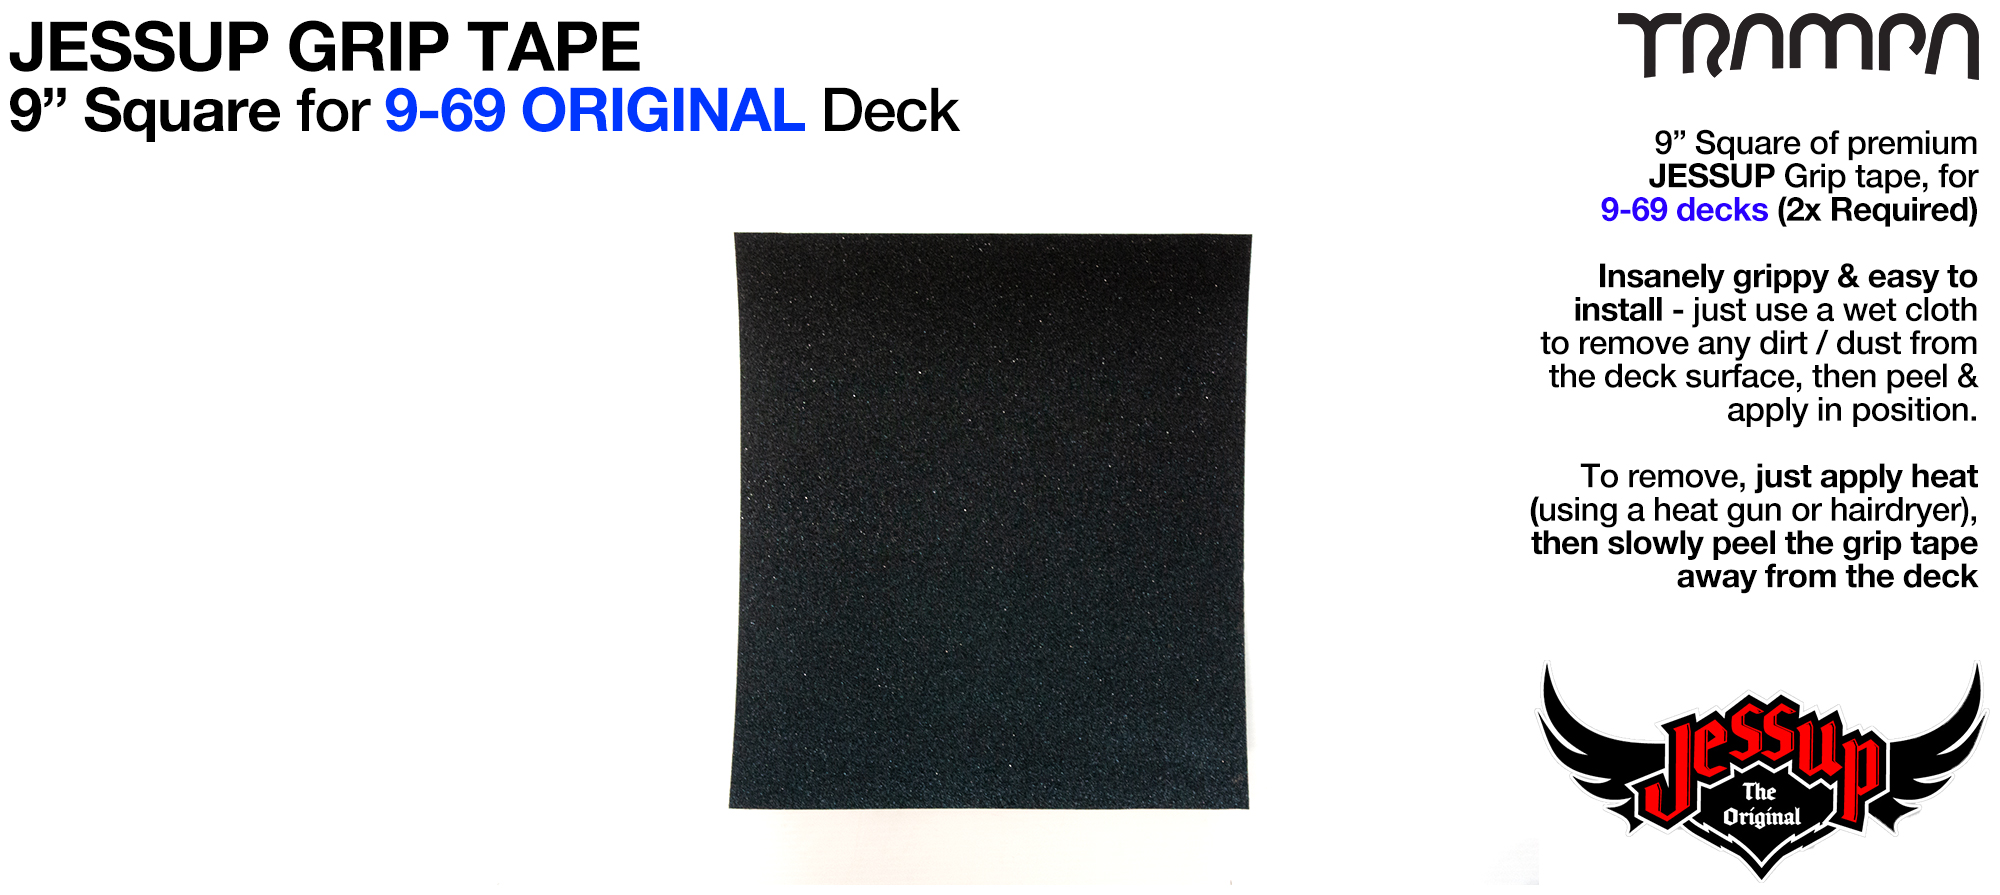 2 x 9 Inch squares of Top Quality Jessop Grip tape